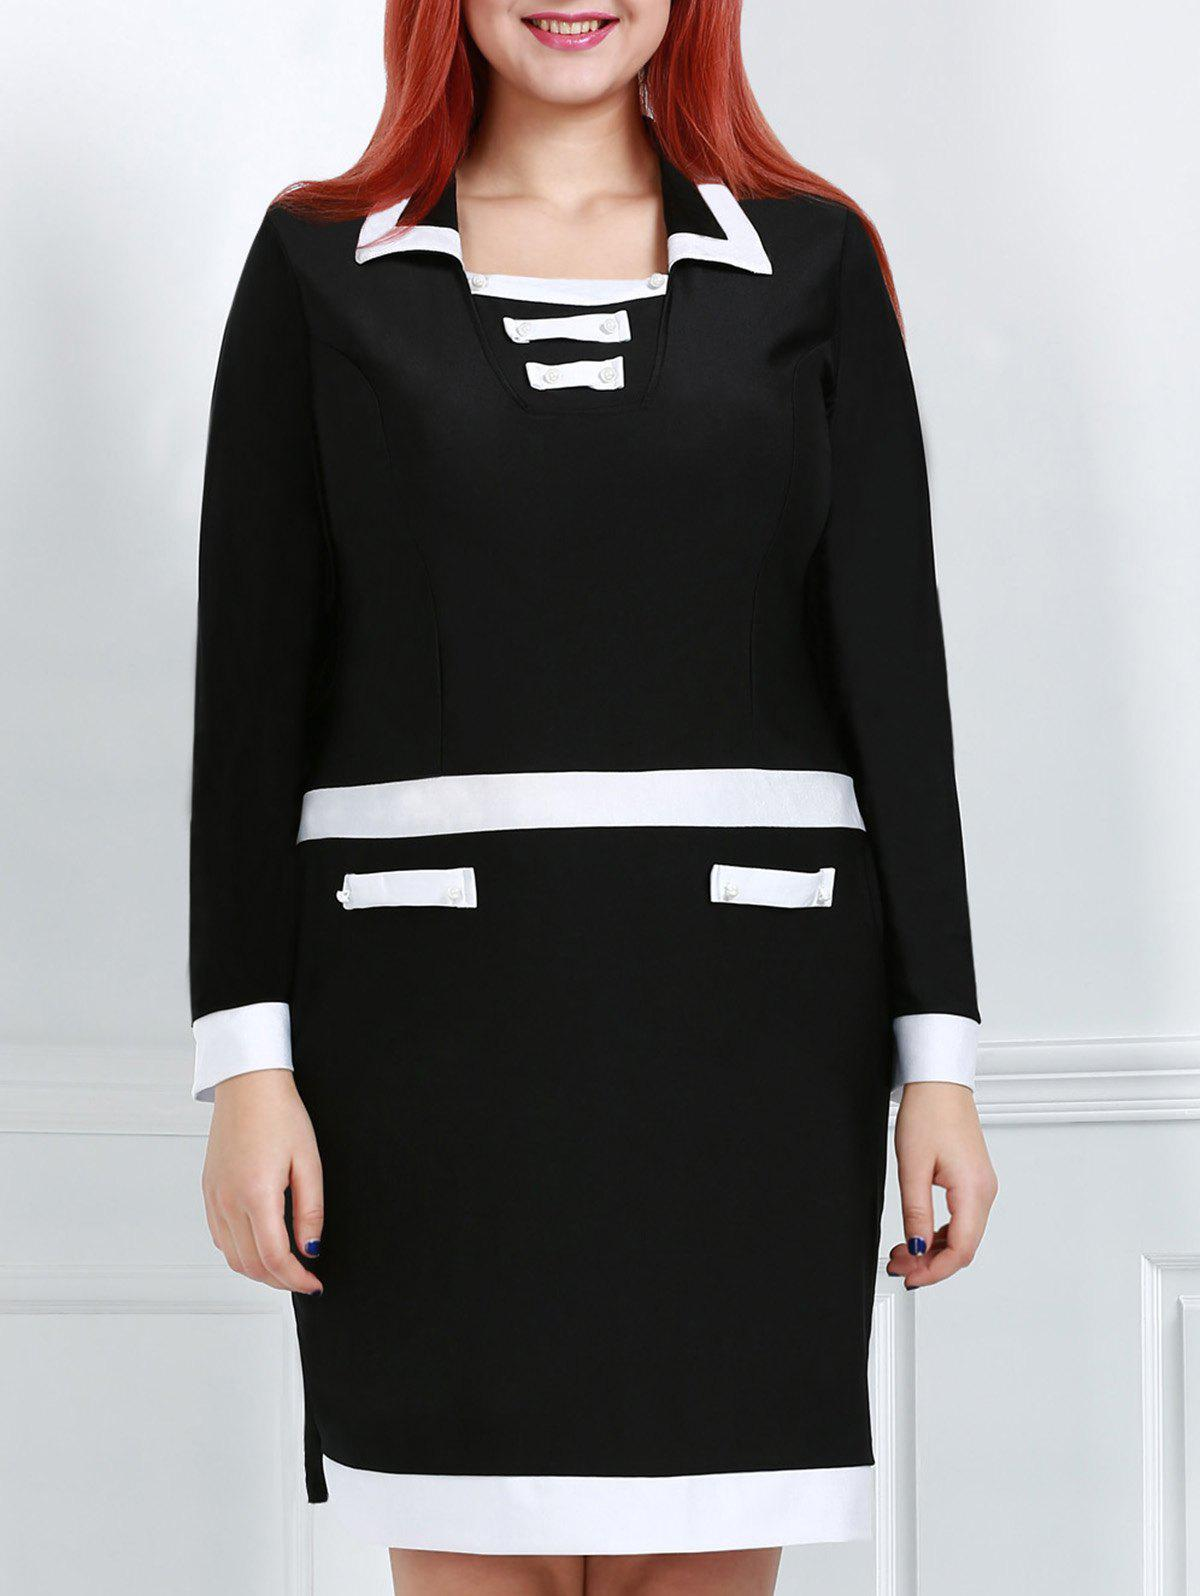 Stylish Turn-Down Collar Long Sleeve Plus Size Color Block Women's Dress